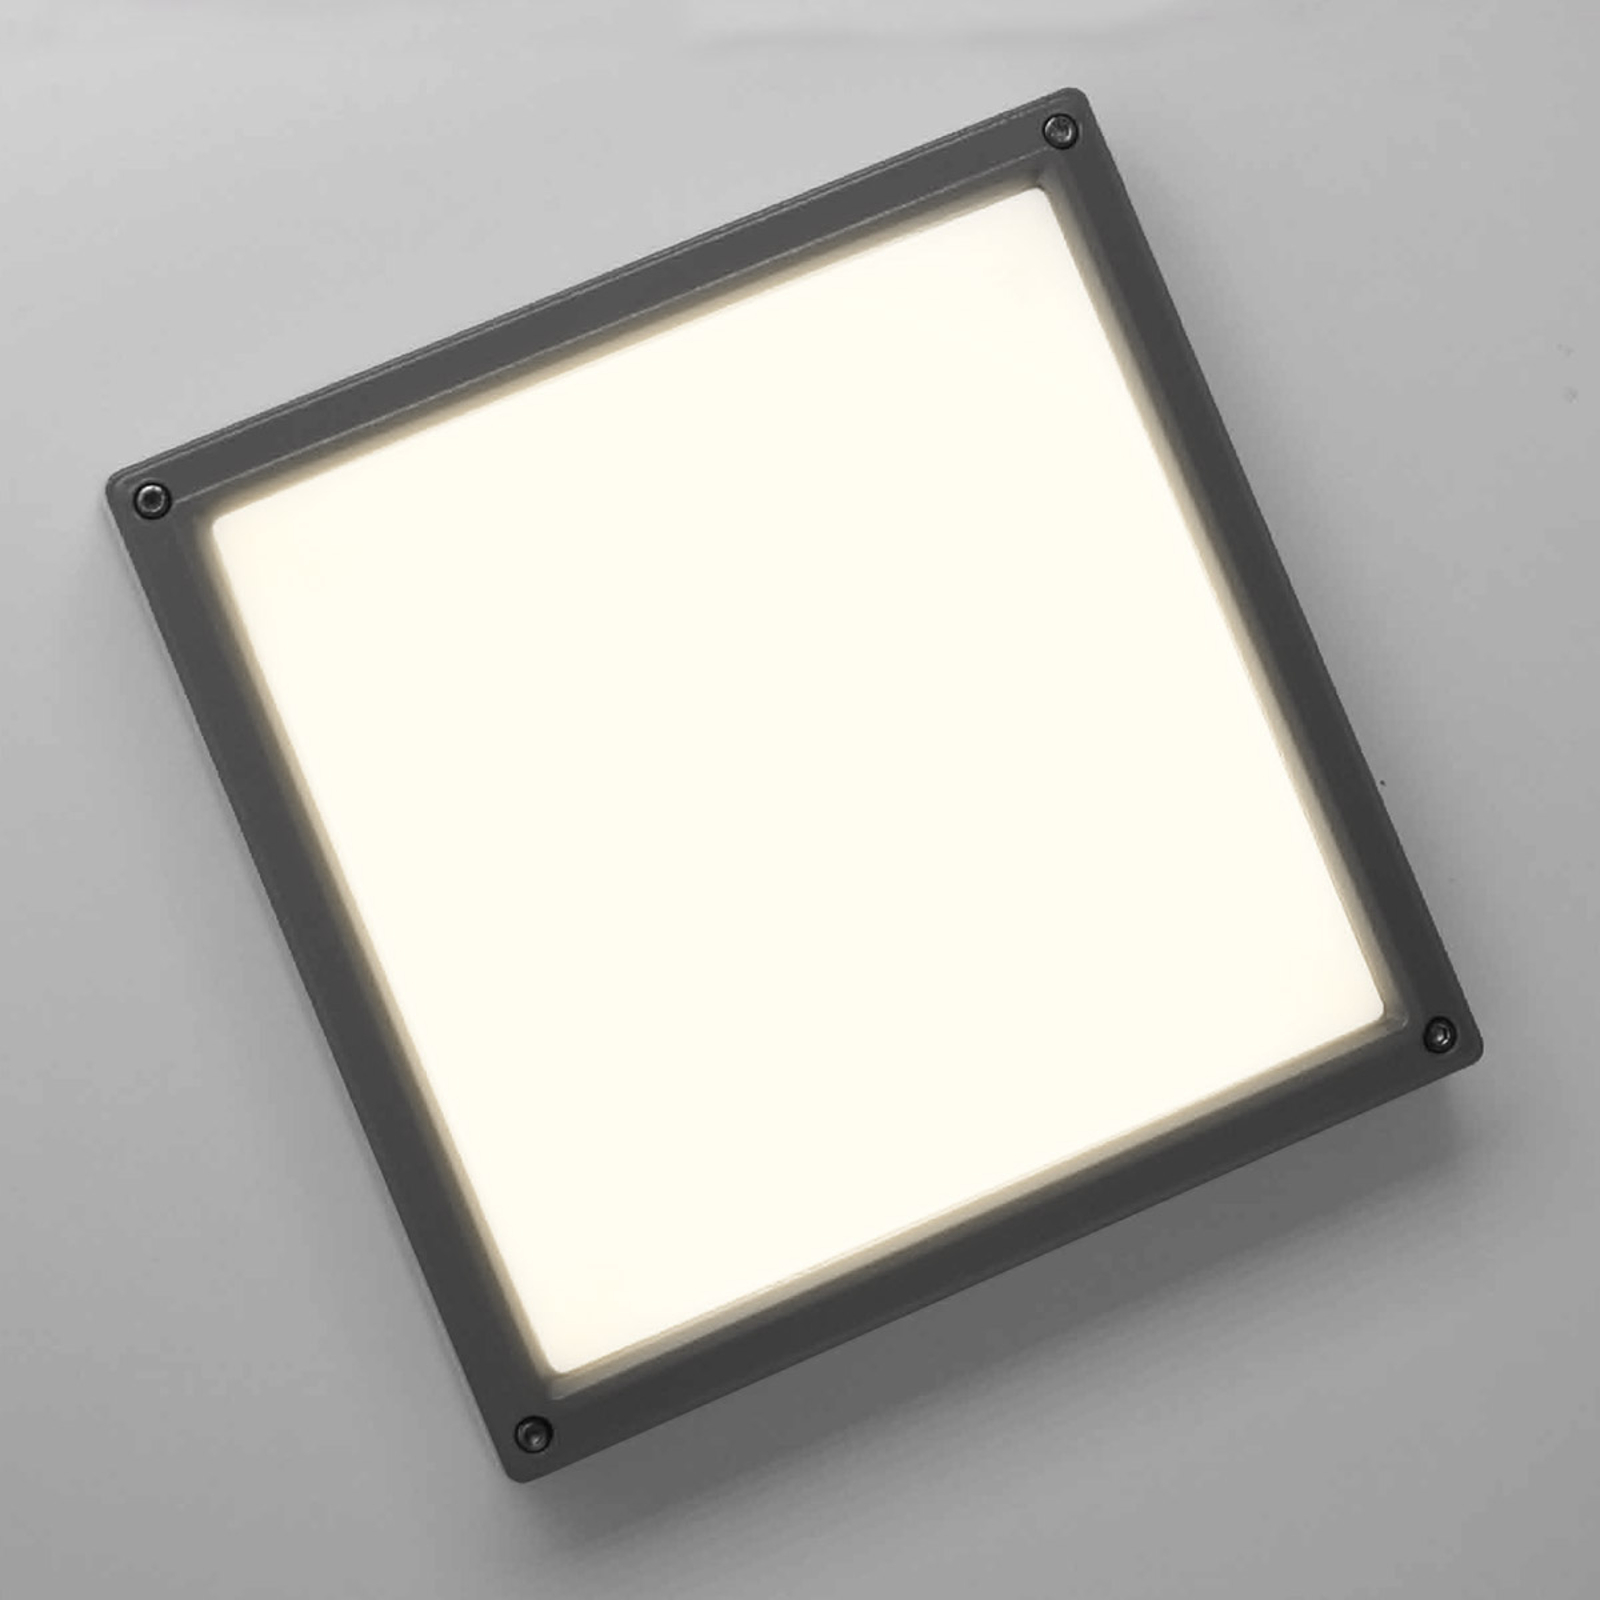 Applique SUN 11 LED 13W anthracite 3 k